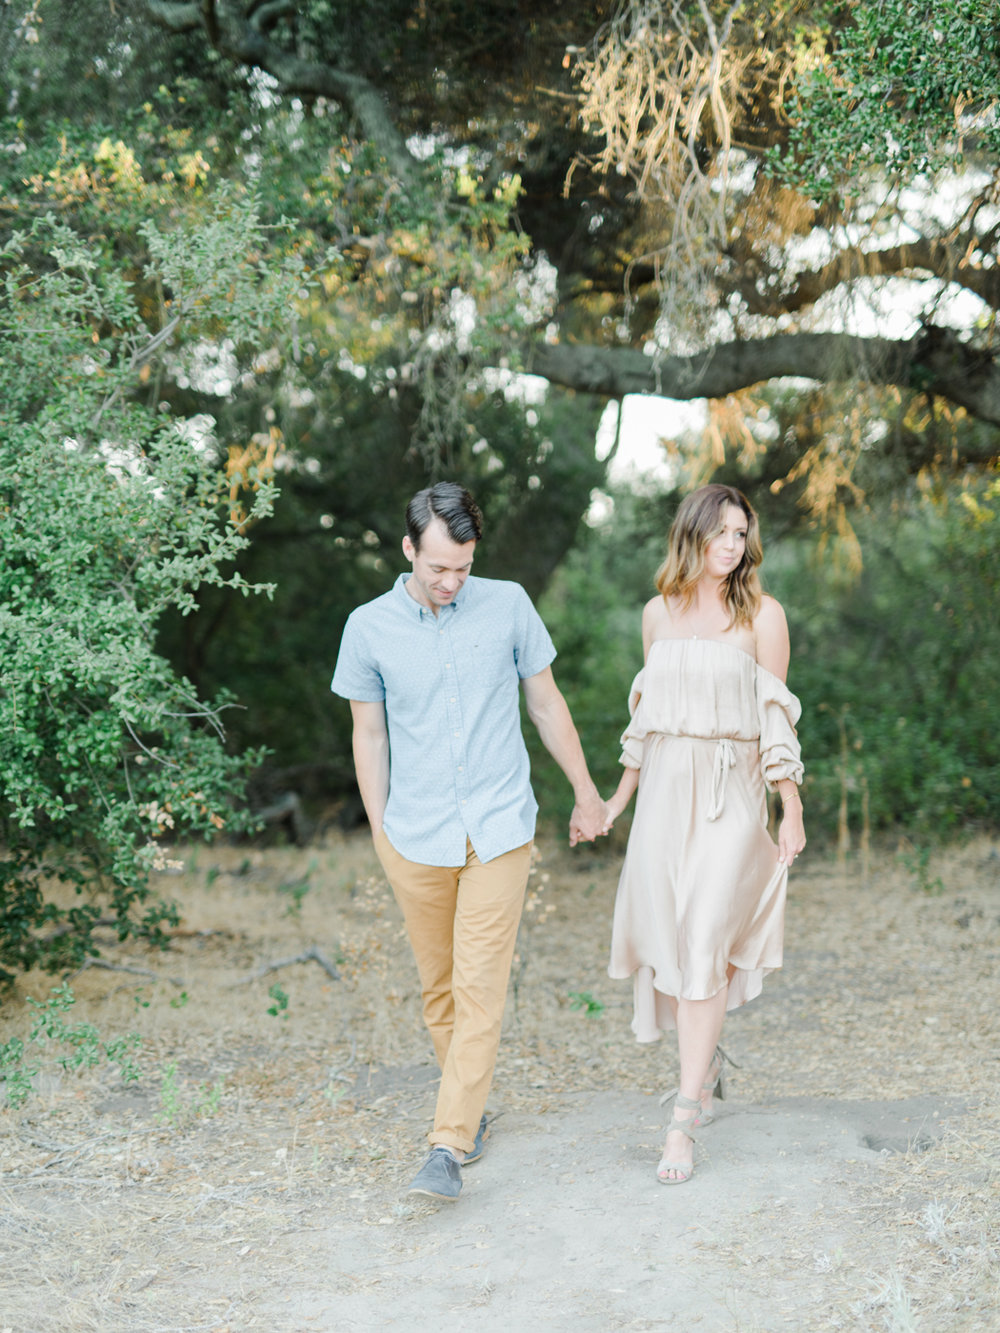 Malibu_Creek_State_Park_Romantic_Engagement_Session_C&J_romantic-11.jpg